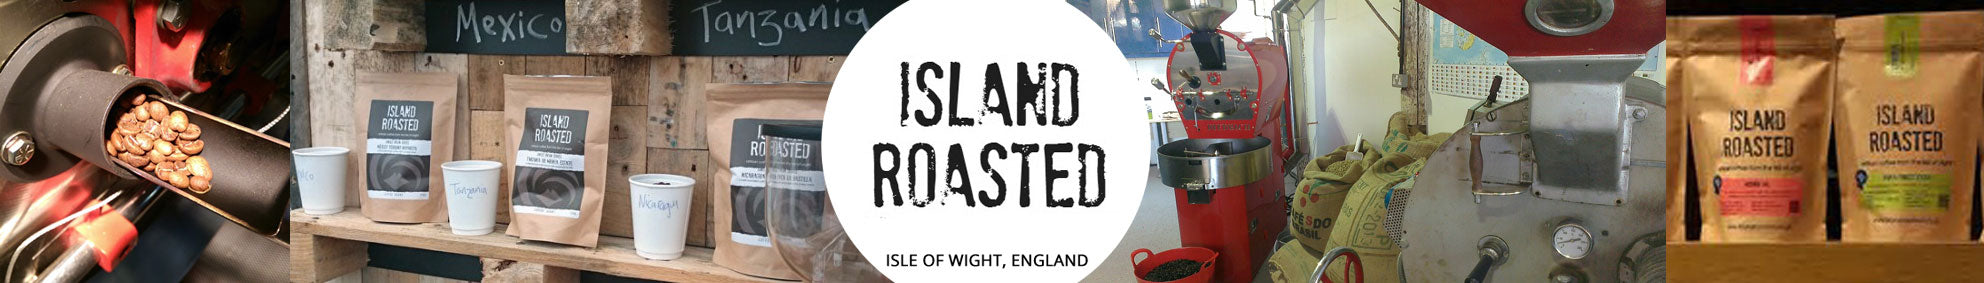 Island Roasted Coffee Roaster Isle of Wight